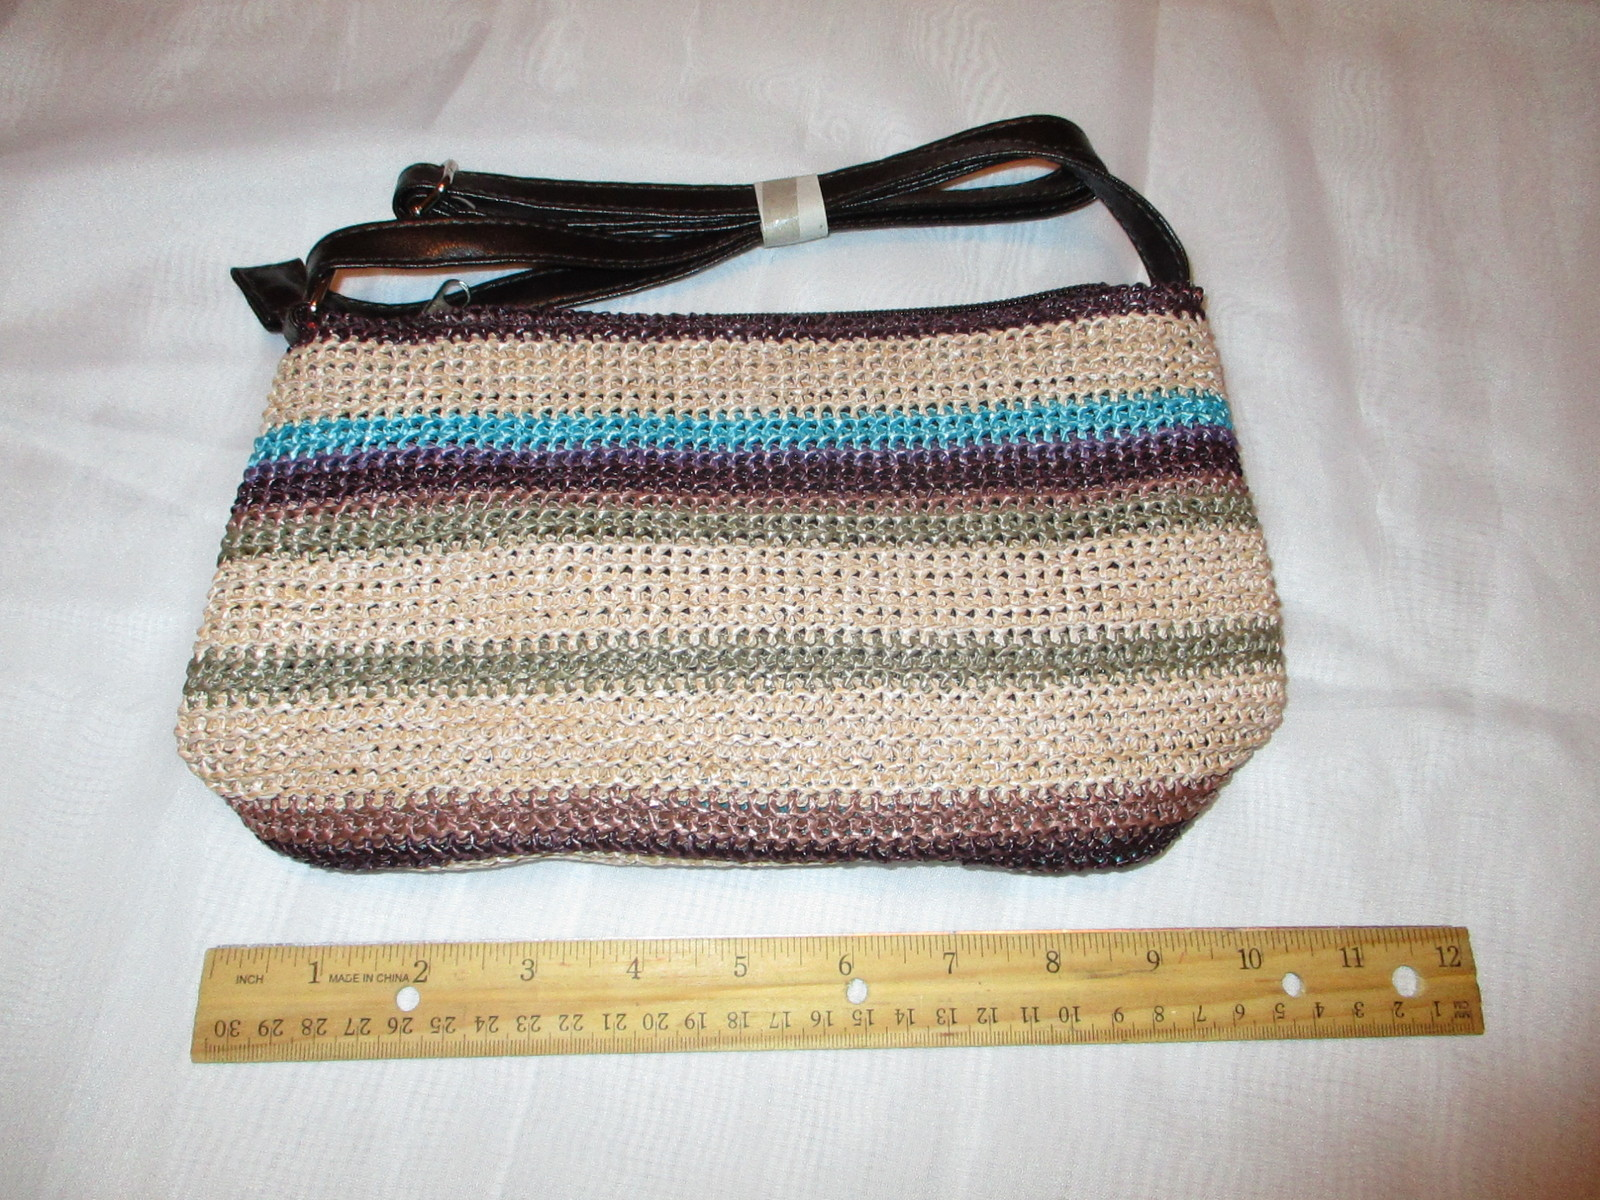 Primary image for Multi Color Woven Purse or Handbag Design